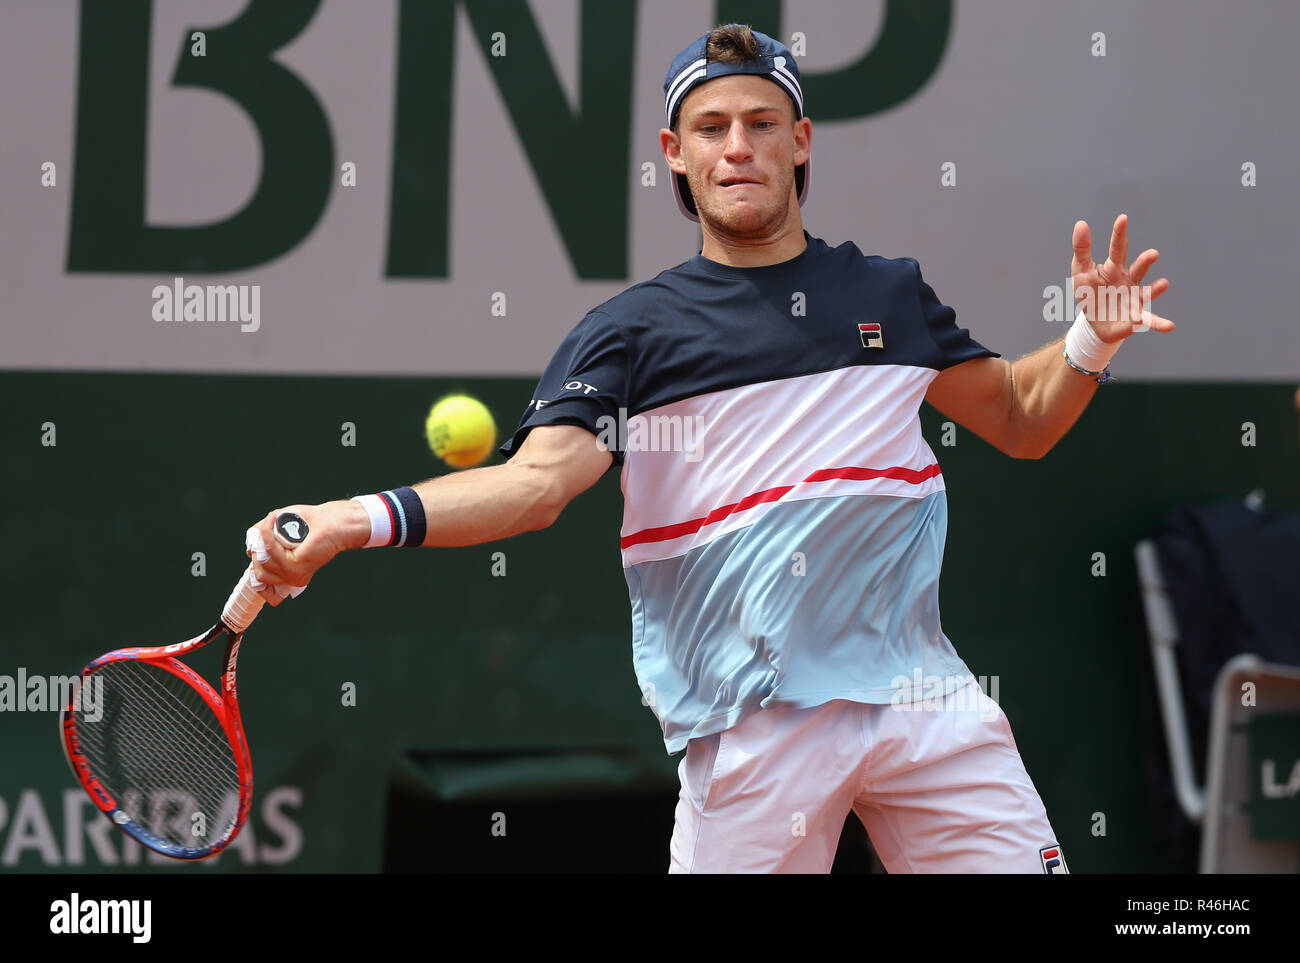 Argentinian Tennis Player Diego Schwartzman Playing Forehand Shot At The French Open 2018 Paris France Stock Photo Alamy